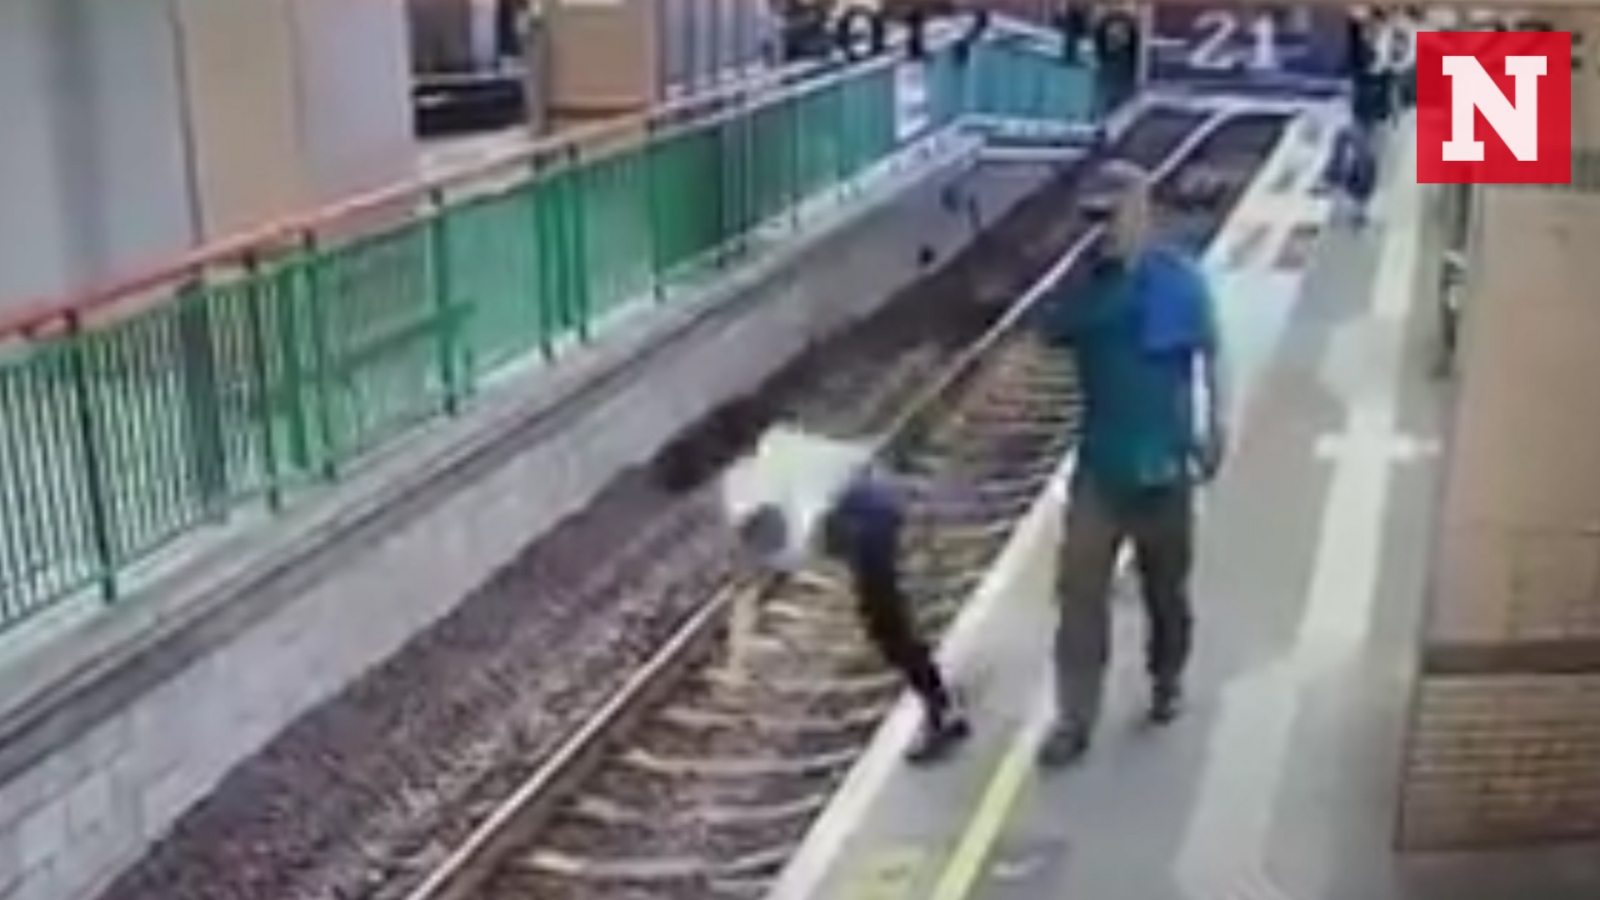 shocking-cctv-video-shows-man-pushing-woman-onto-railway-tracks-in-hong-kong